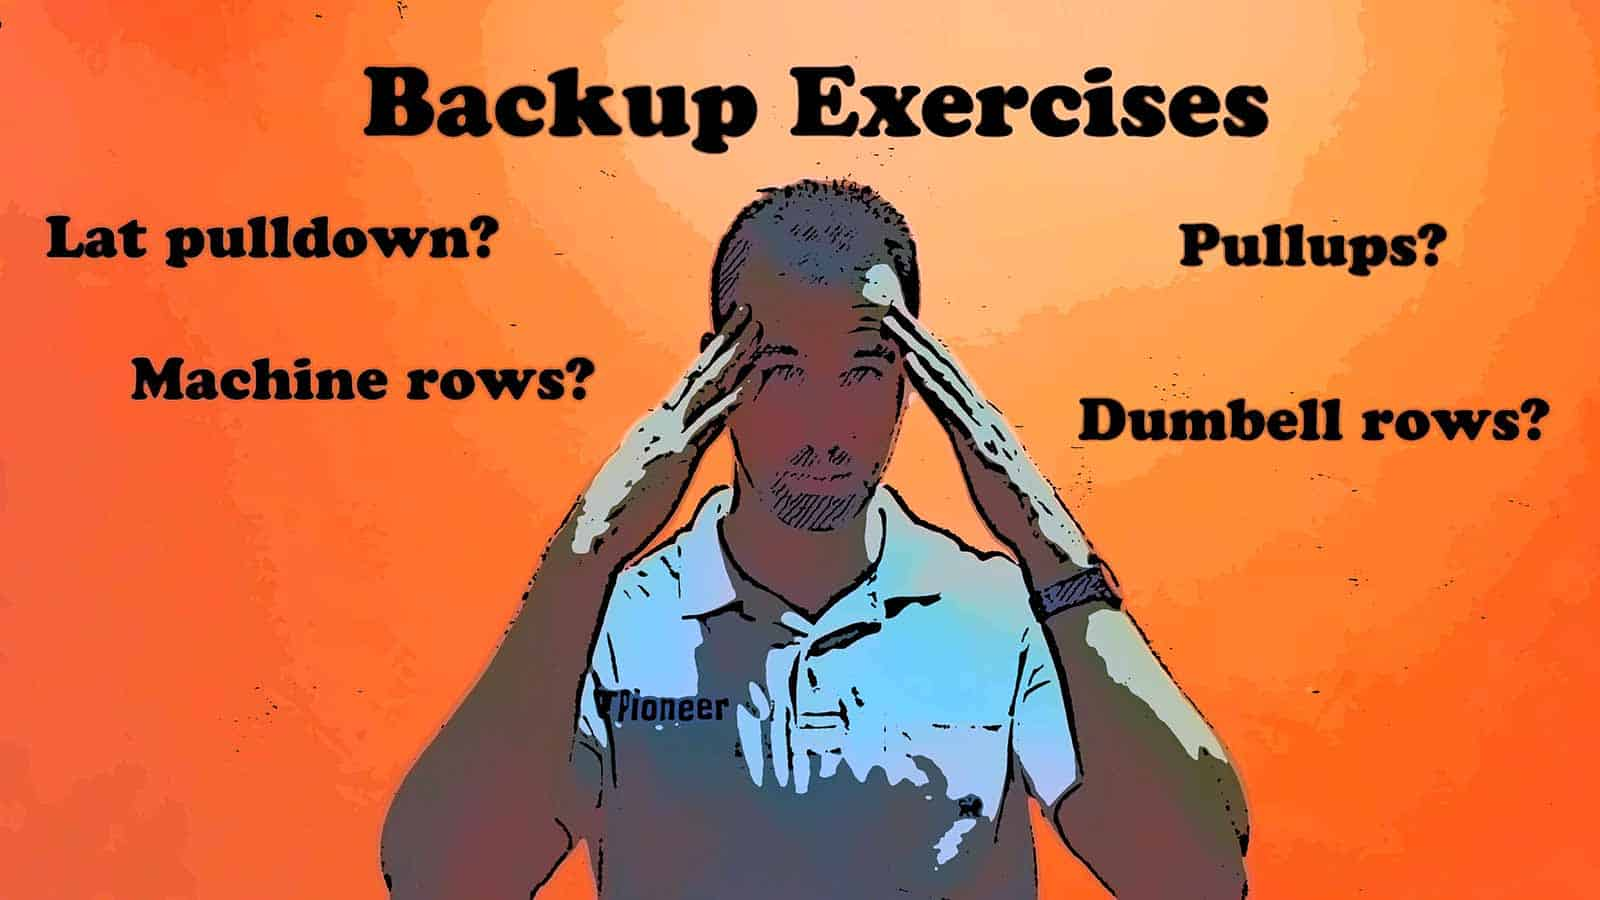 Having backup exercises